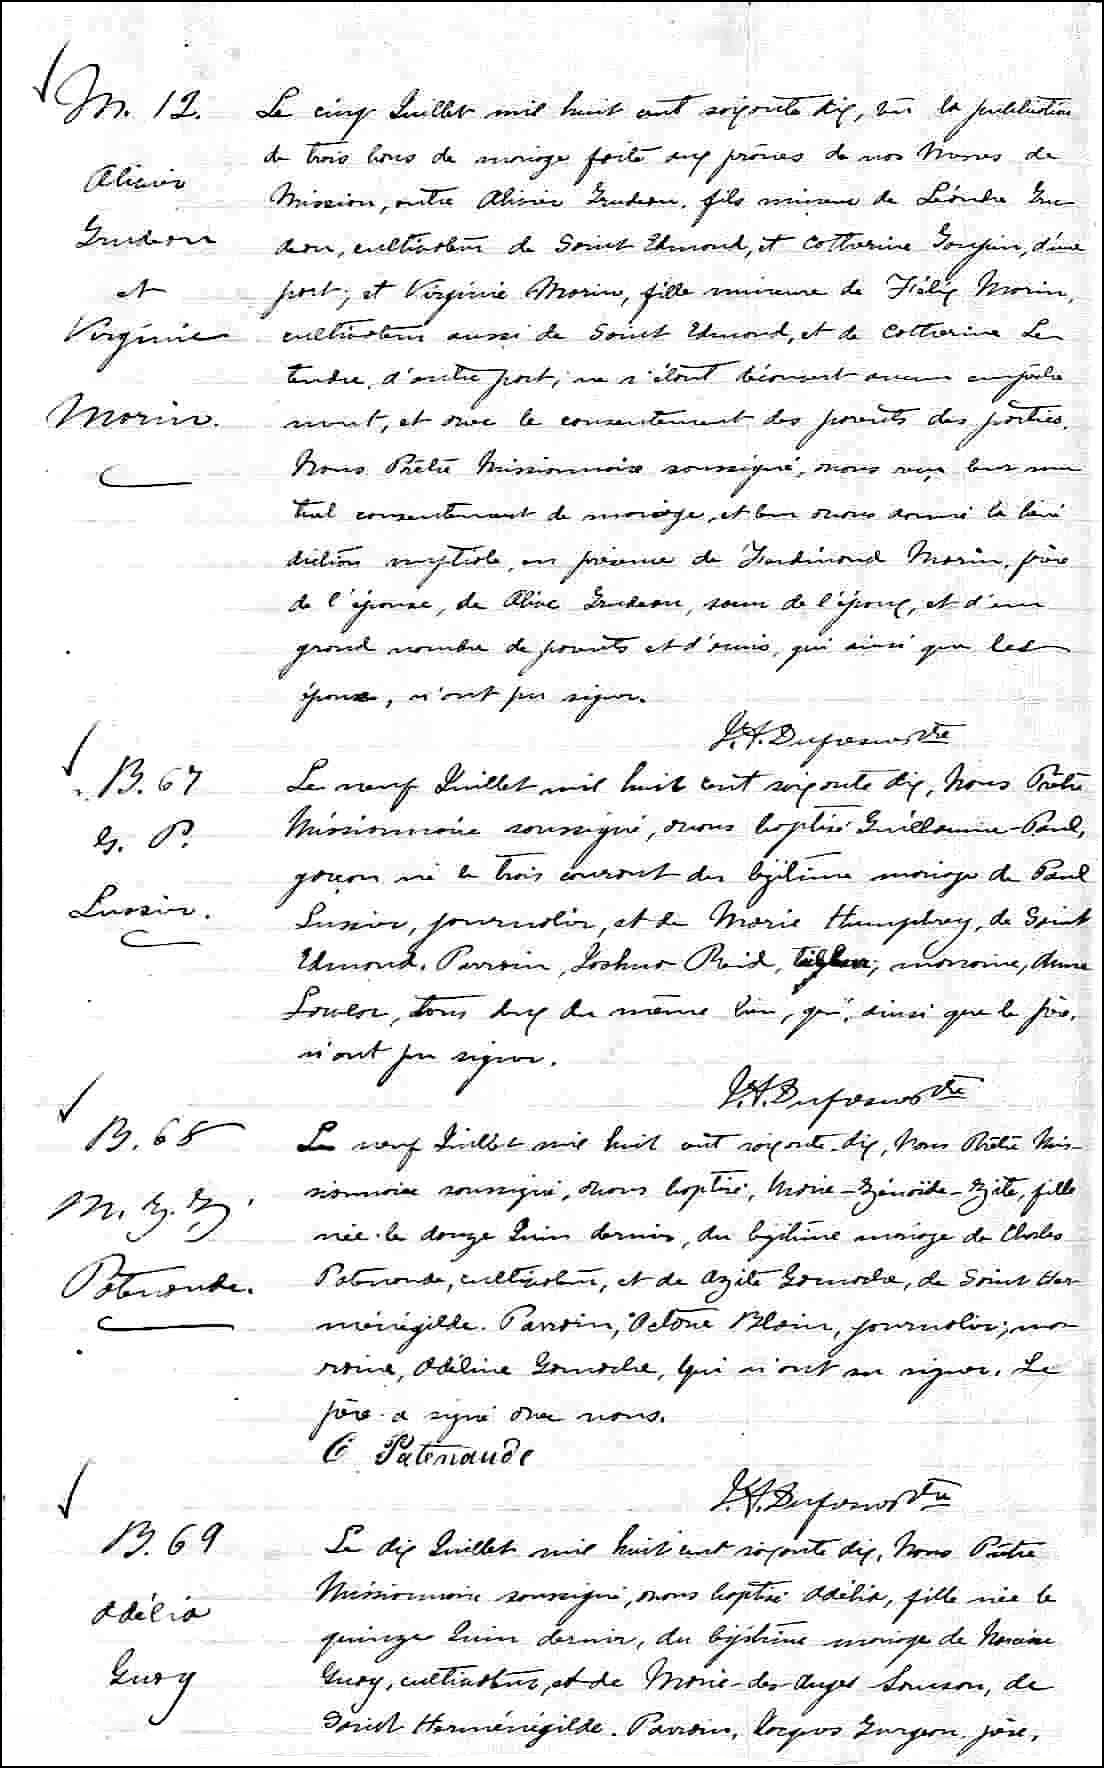 Birth and Baptismal Record of Marie-Zenaide-Zite Patenaude